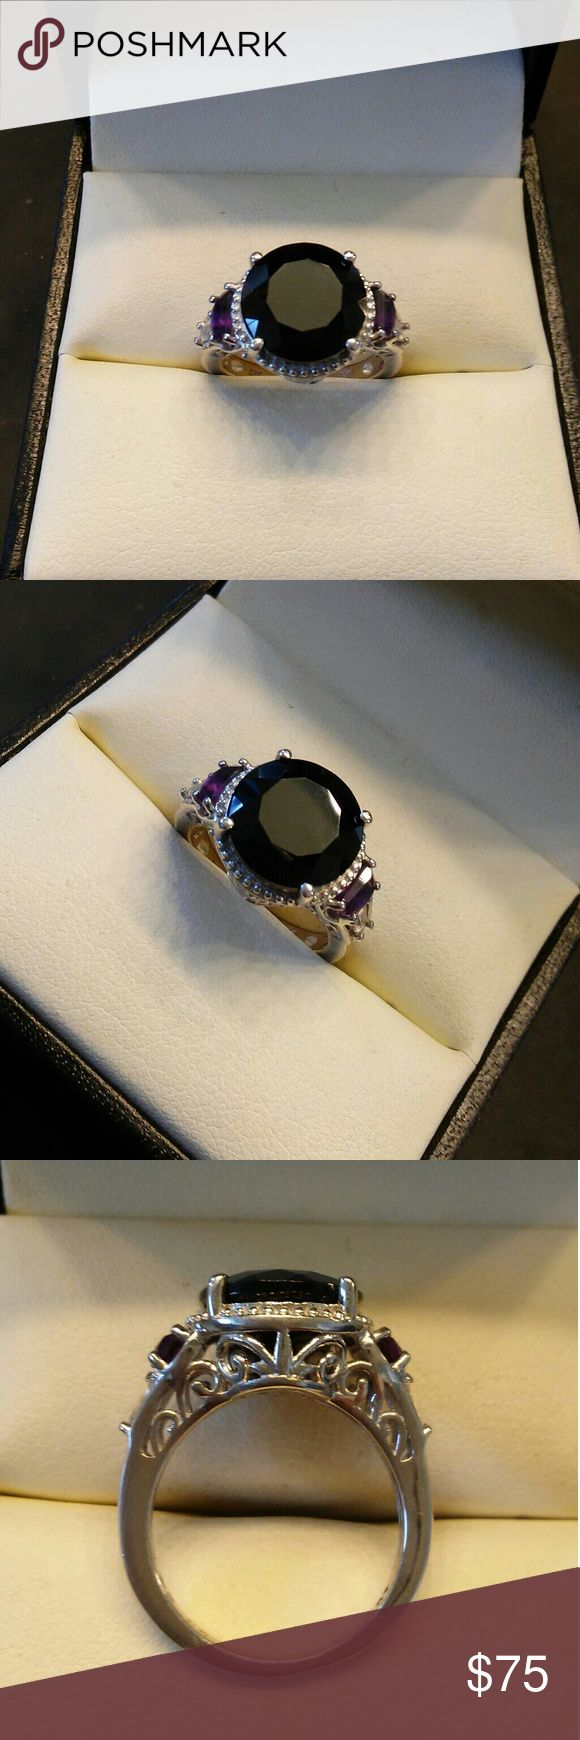 6.00ctw Genuine Black Tourmaline & Amethyst 925 Beautiful genuine Black Tourmaline, Amethyst & White Topaz. Platinum over solid 925 sterling silver. Size 7 estate 925 Jewelry Rings